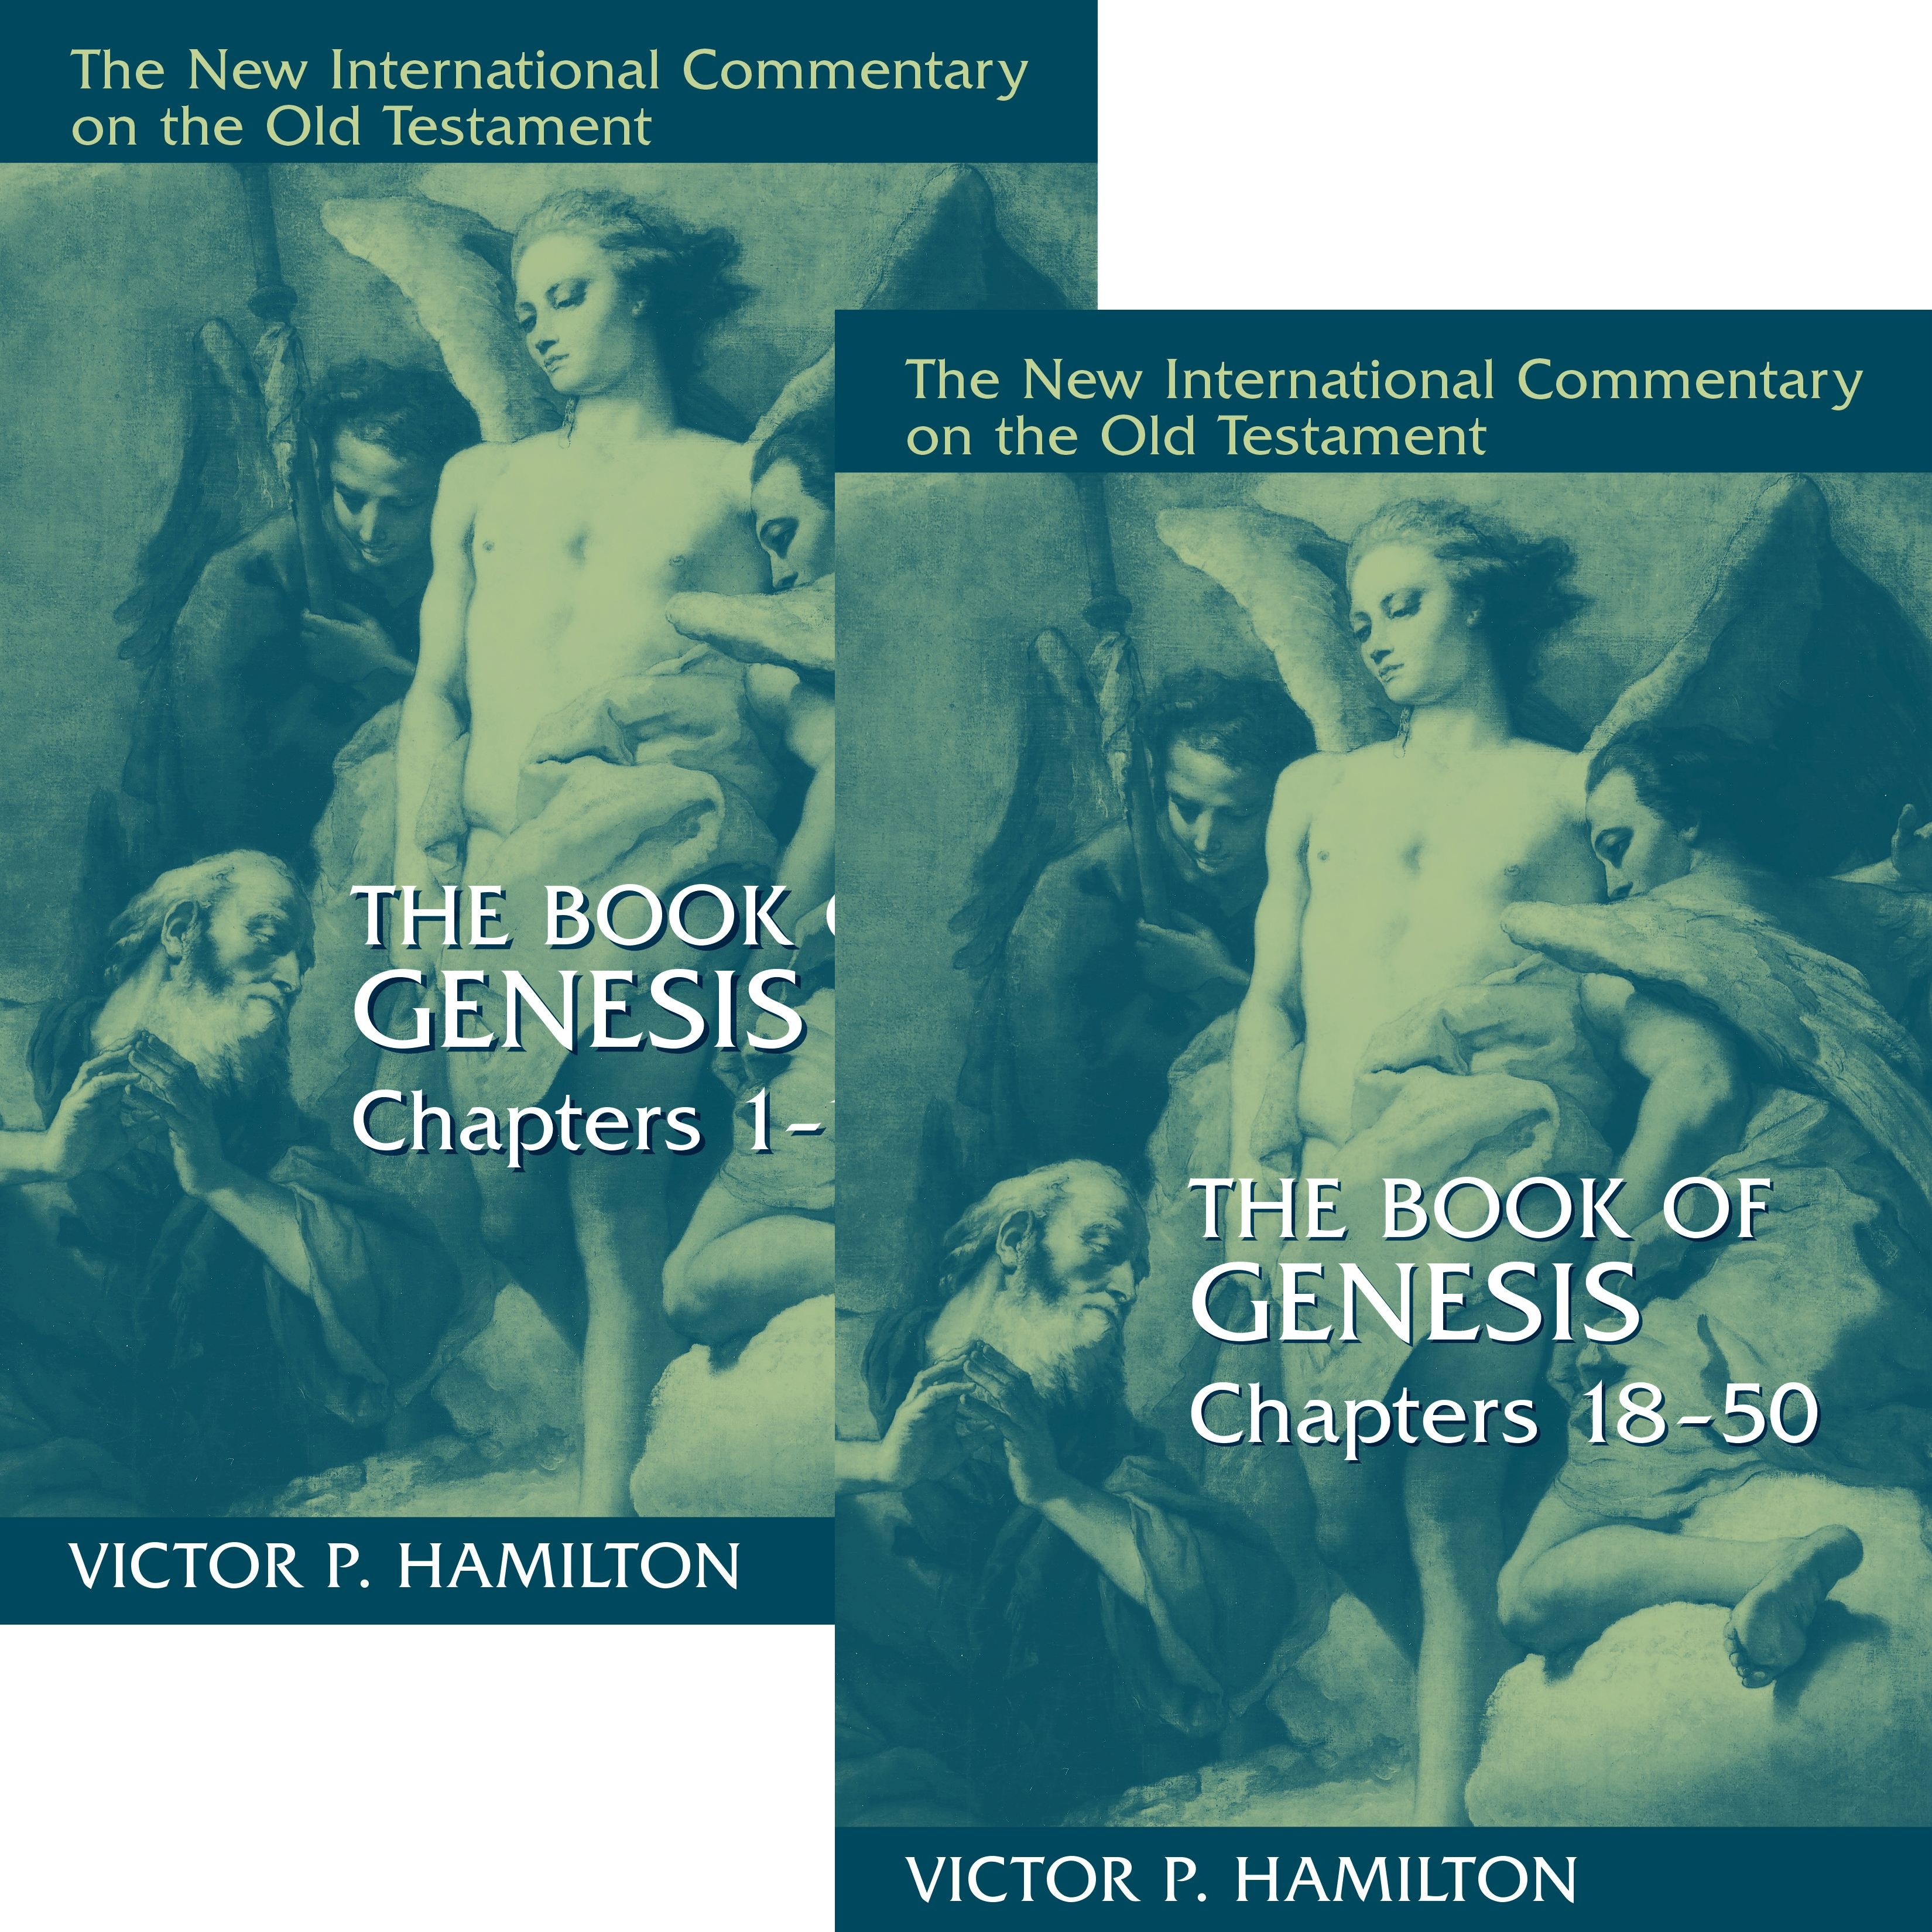 The Book of Genesis, 2 vols. (New International Commentary on the Old Testament | NICOT)